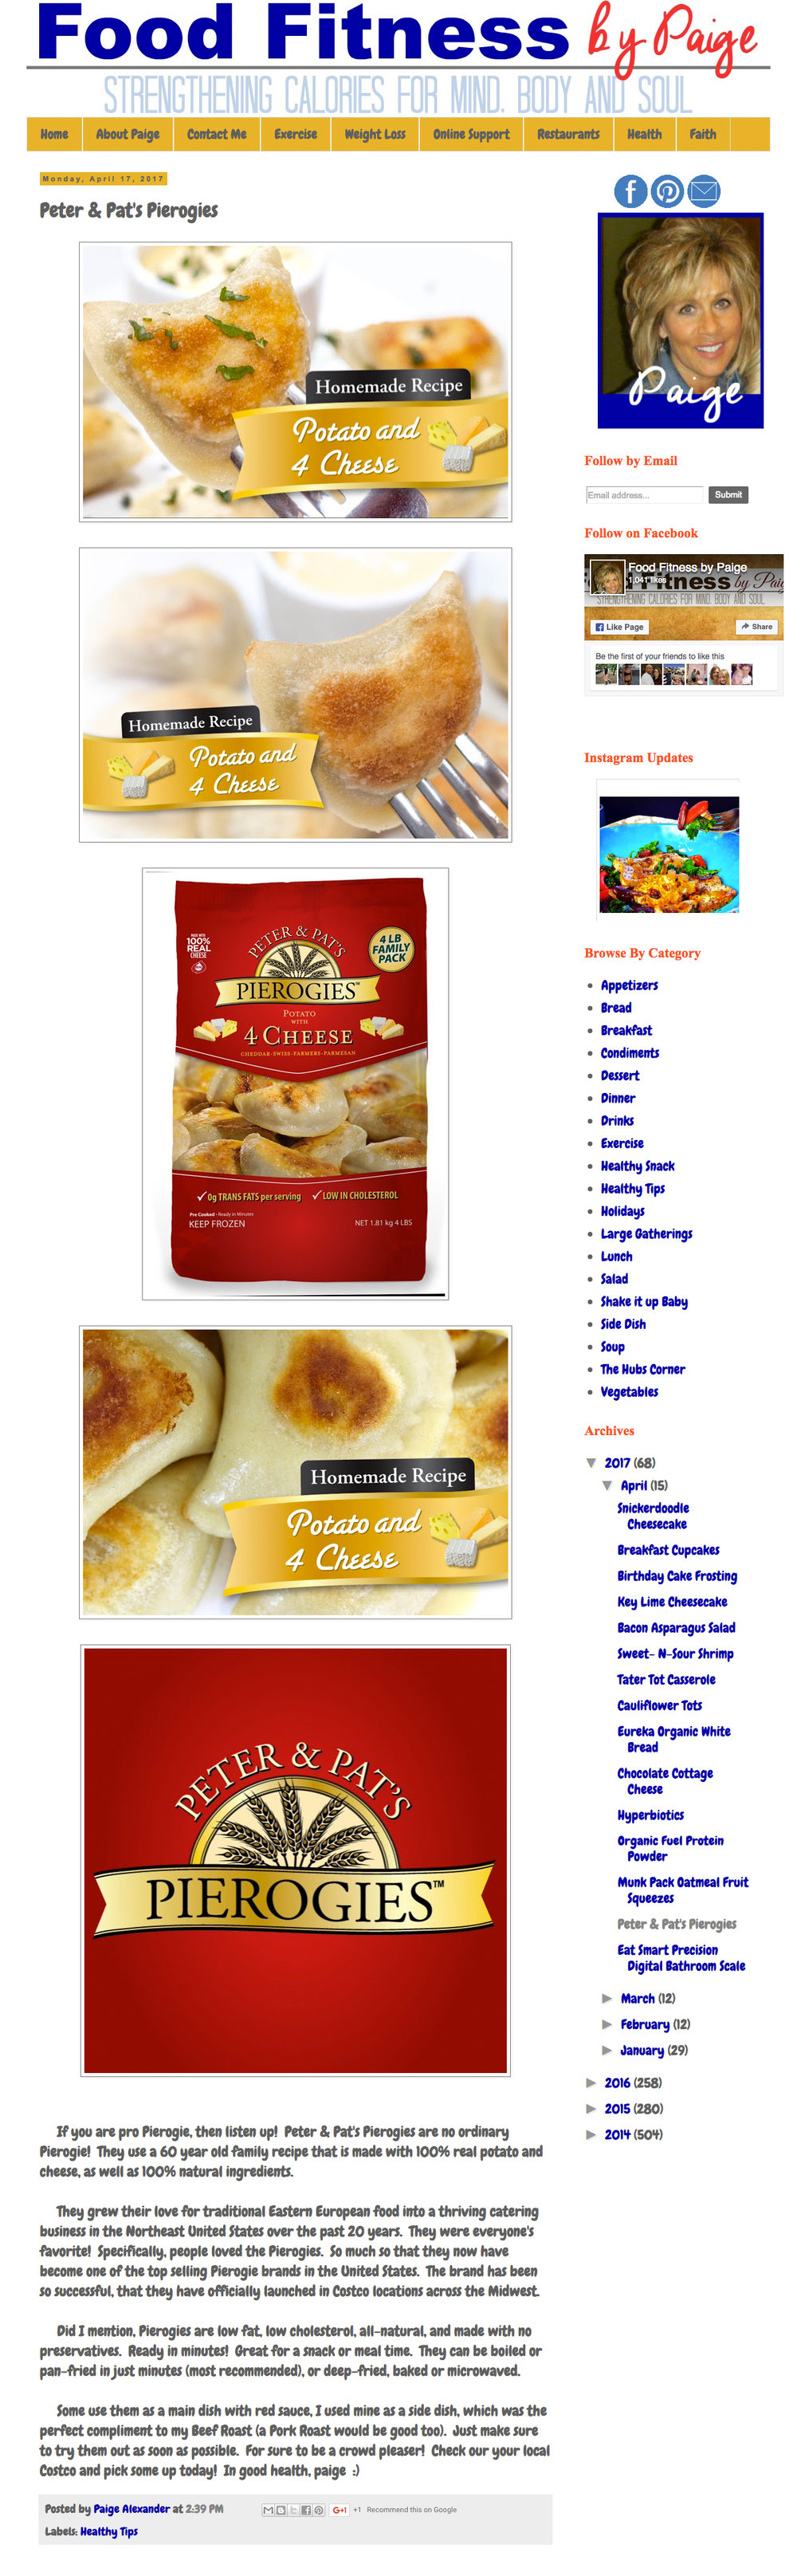 Peter & Pat's Pierogies featured on Food Fitness by Paige